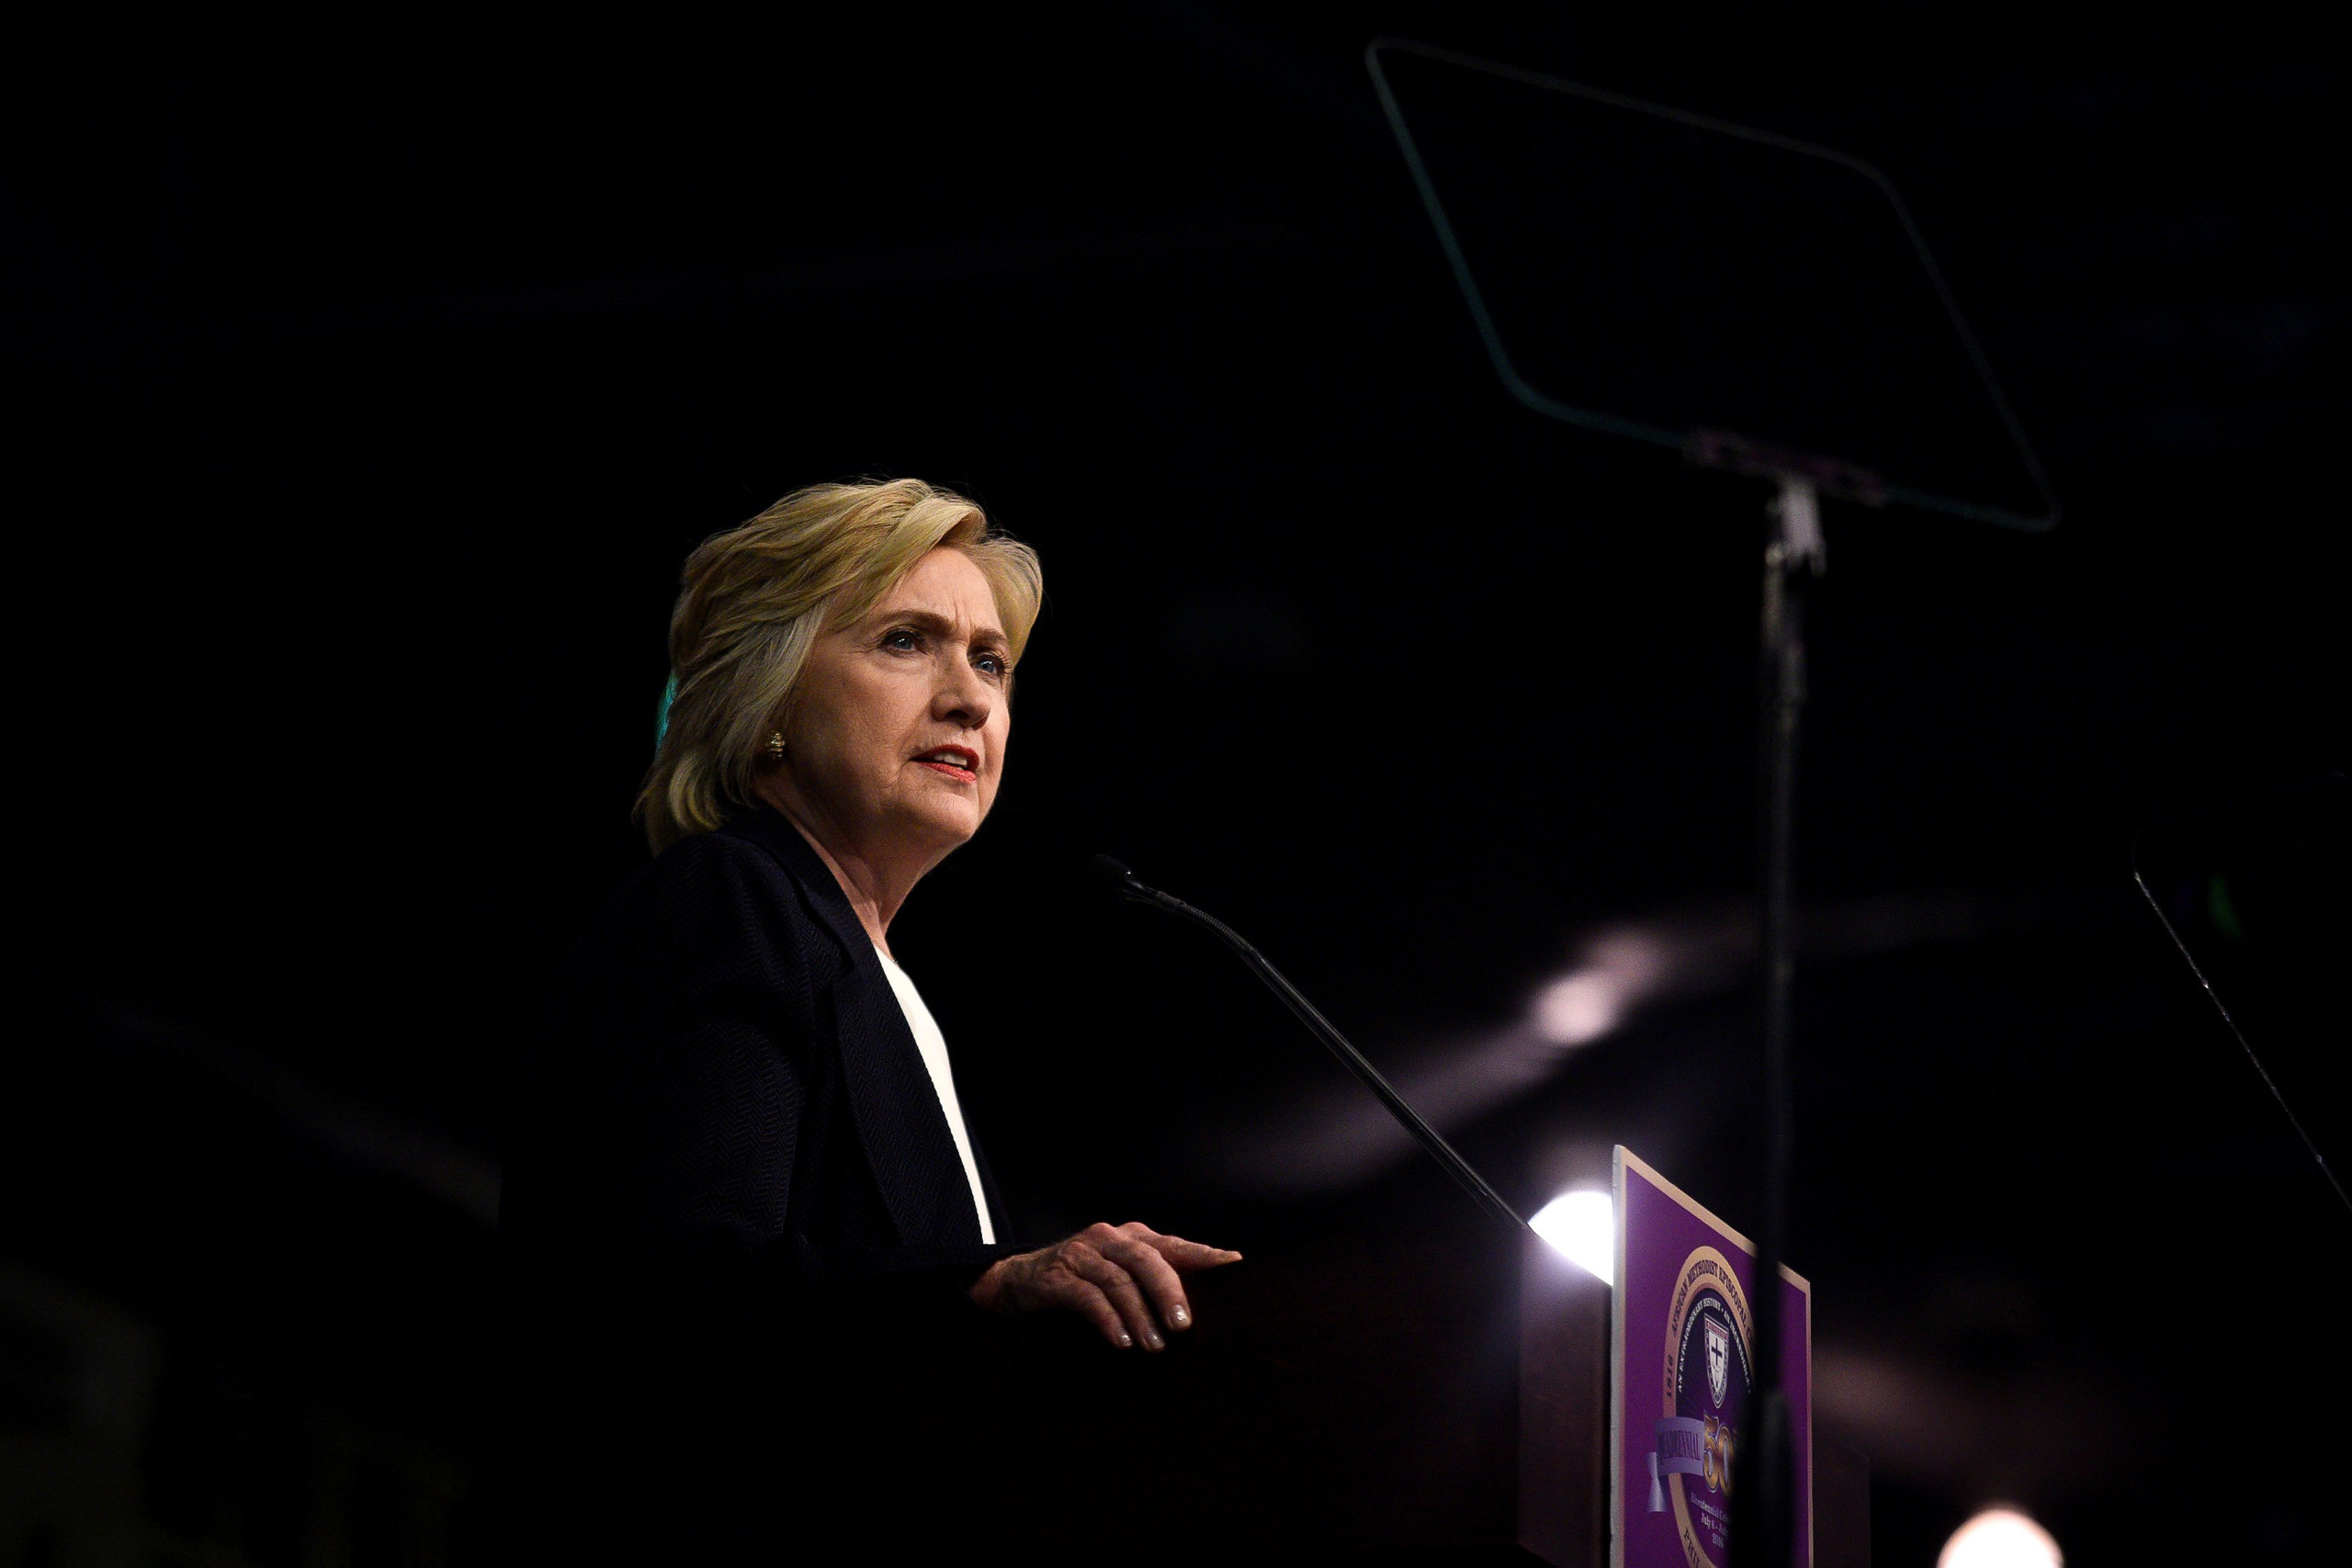 Democratic Presidential candidate Hillary Clinton speaks to the General Conference of the African Methodist Episcopal Church during their annual convention at the Pennsylvania Convention Center in Philadelphia on July 8, 2016.